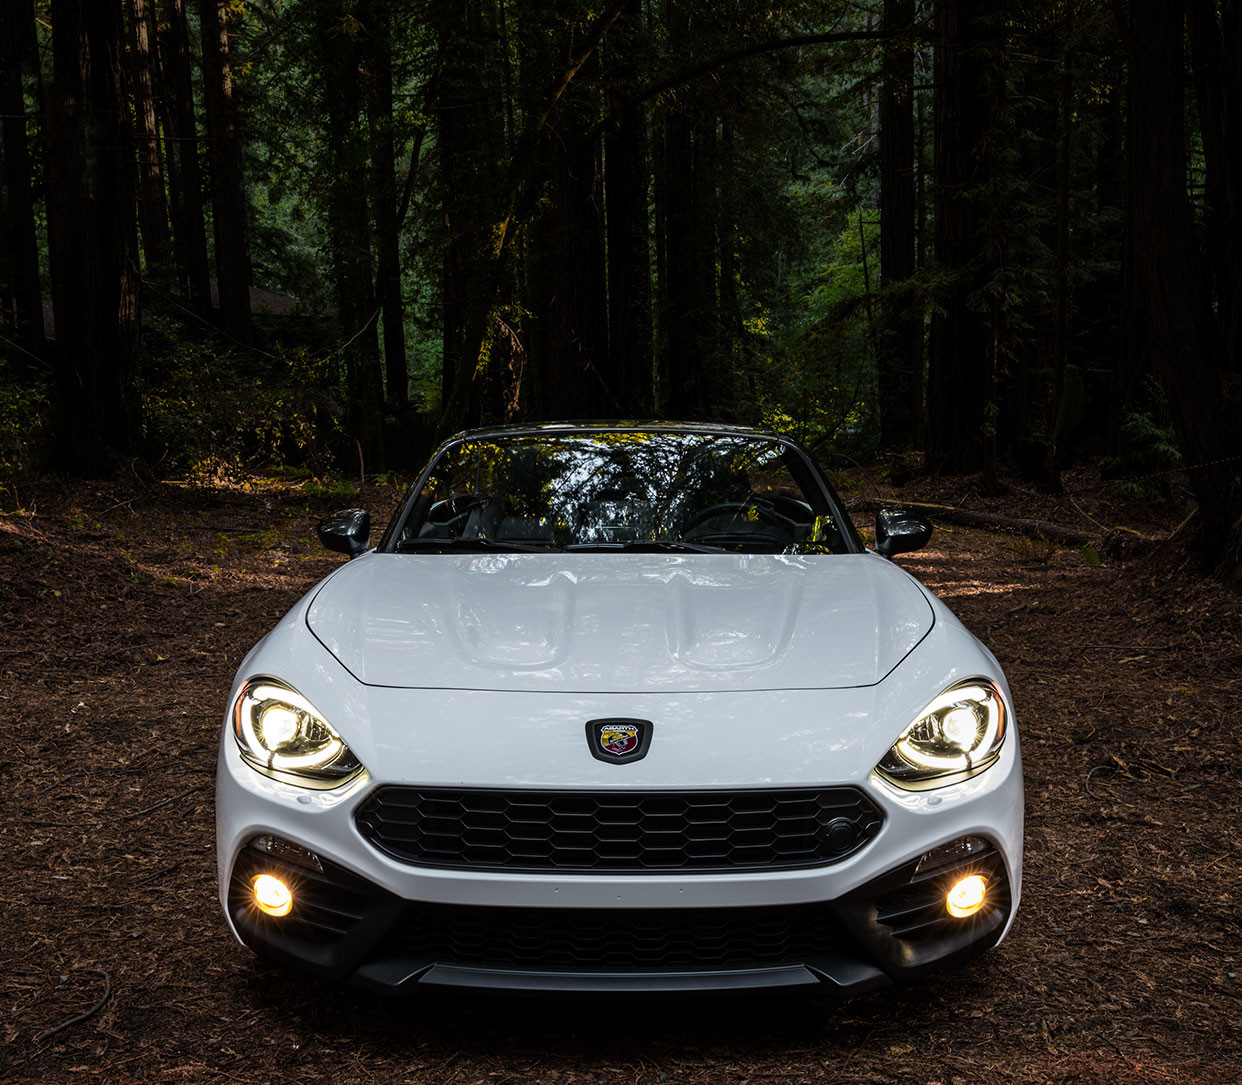 2019 Fiat 124 Spider driving down highway, show in red